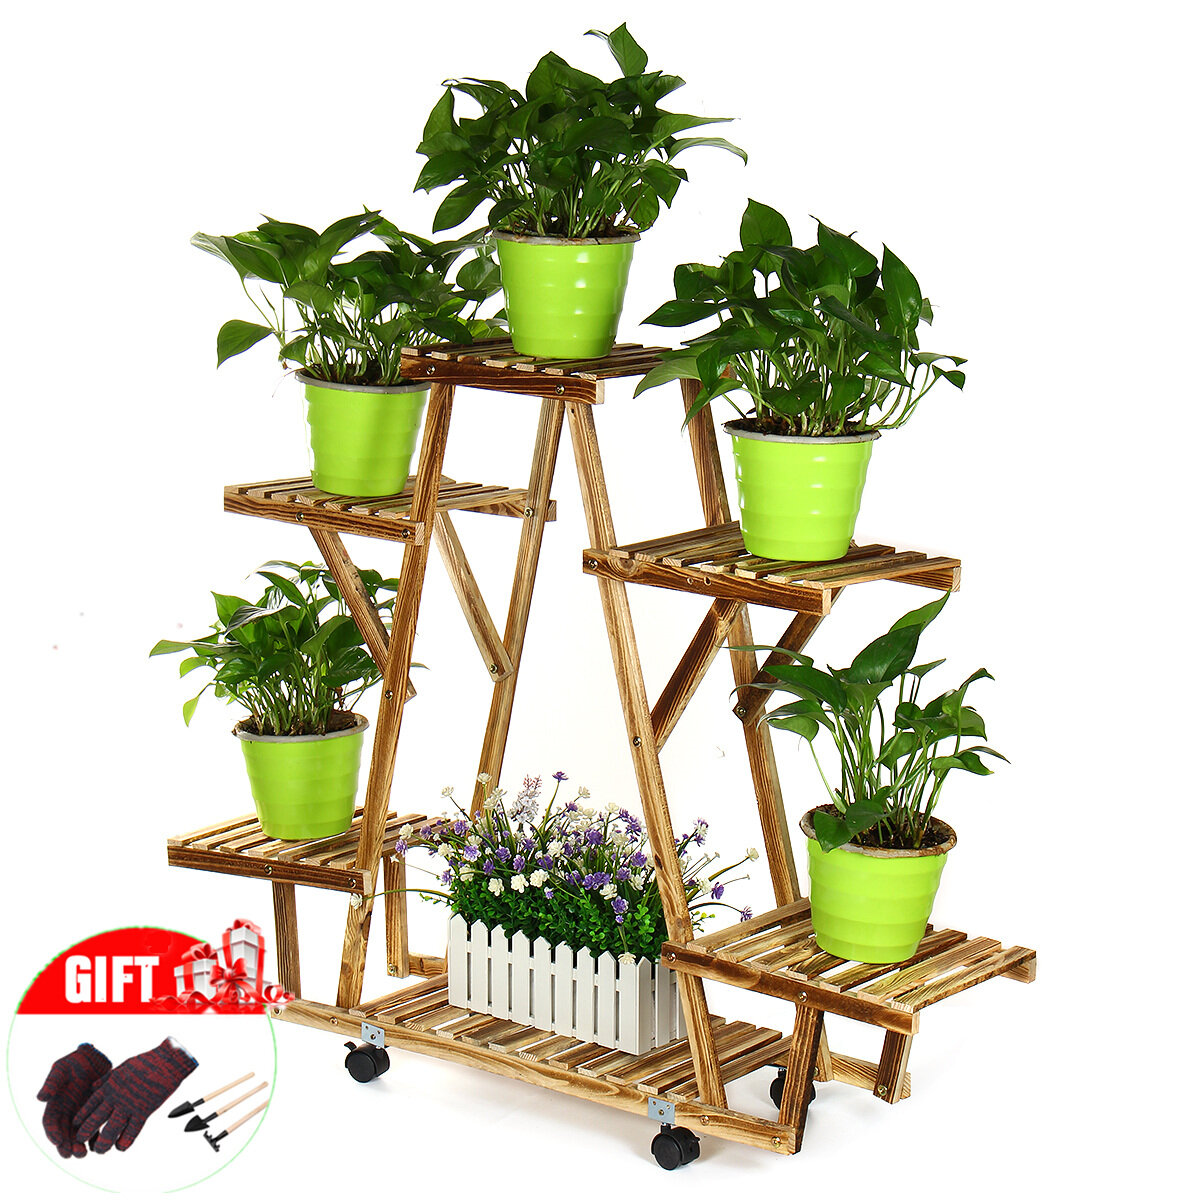 Wood Plant Stands High Rolling Plant Display Stand for Multiple Plants Garden Balcony, Natural Wood